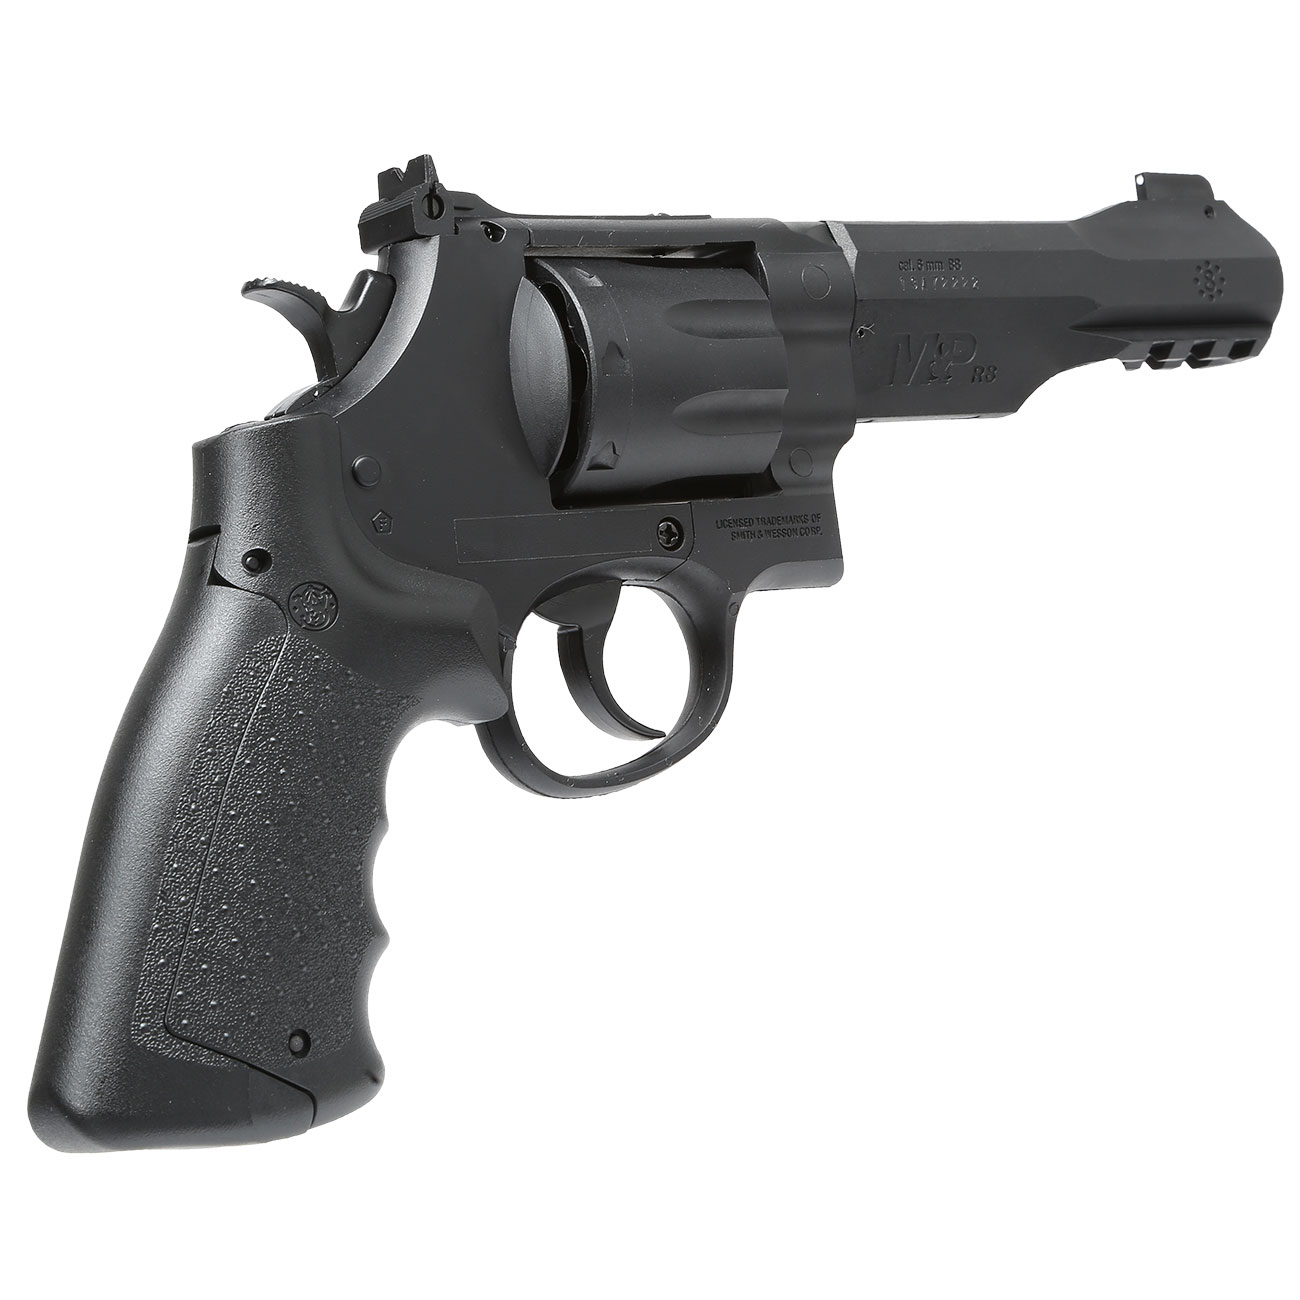 Smith & Wesson M&P R8 4 Zoll CO2 Revolver 6mm BB schwarz 3